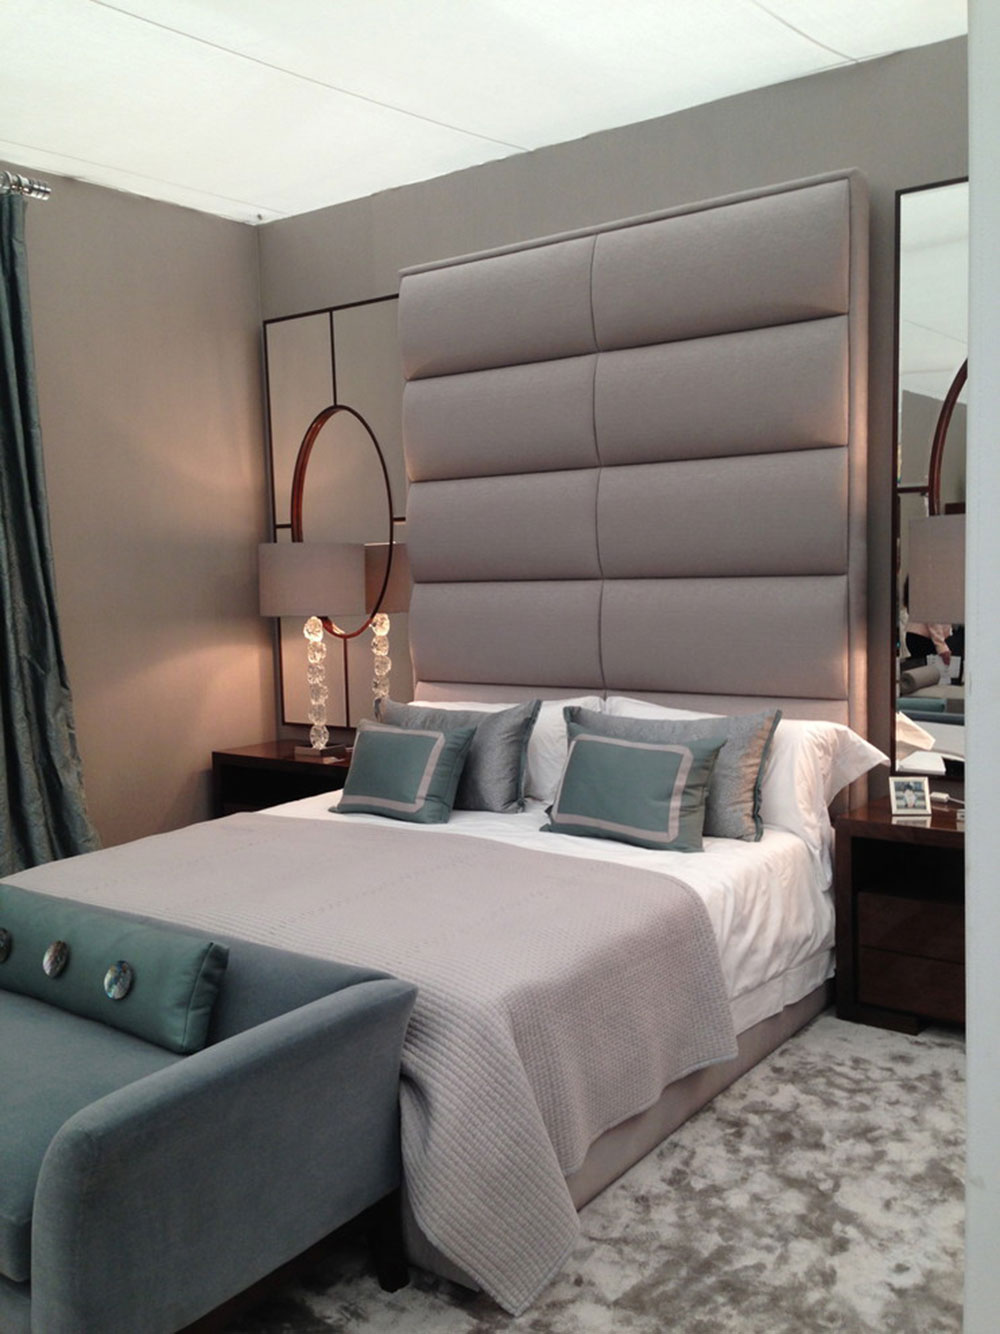 Great Ideas In Choosing A Headboard For Your Bed